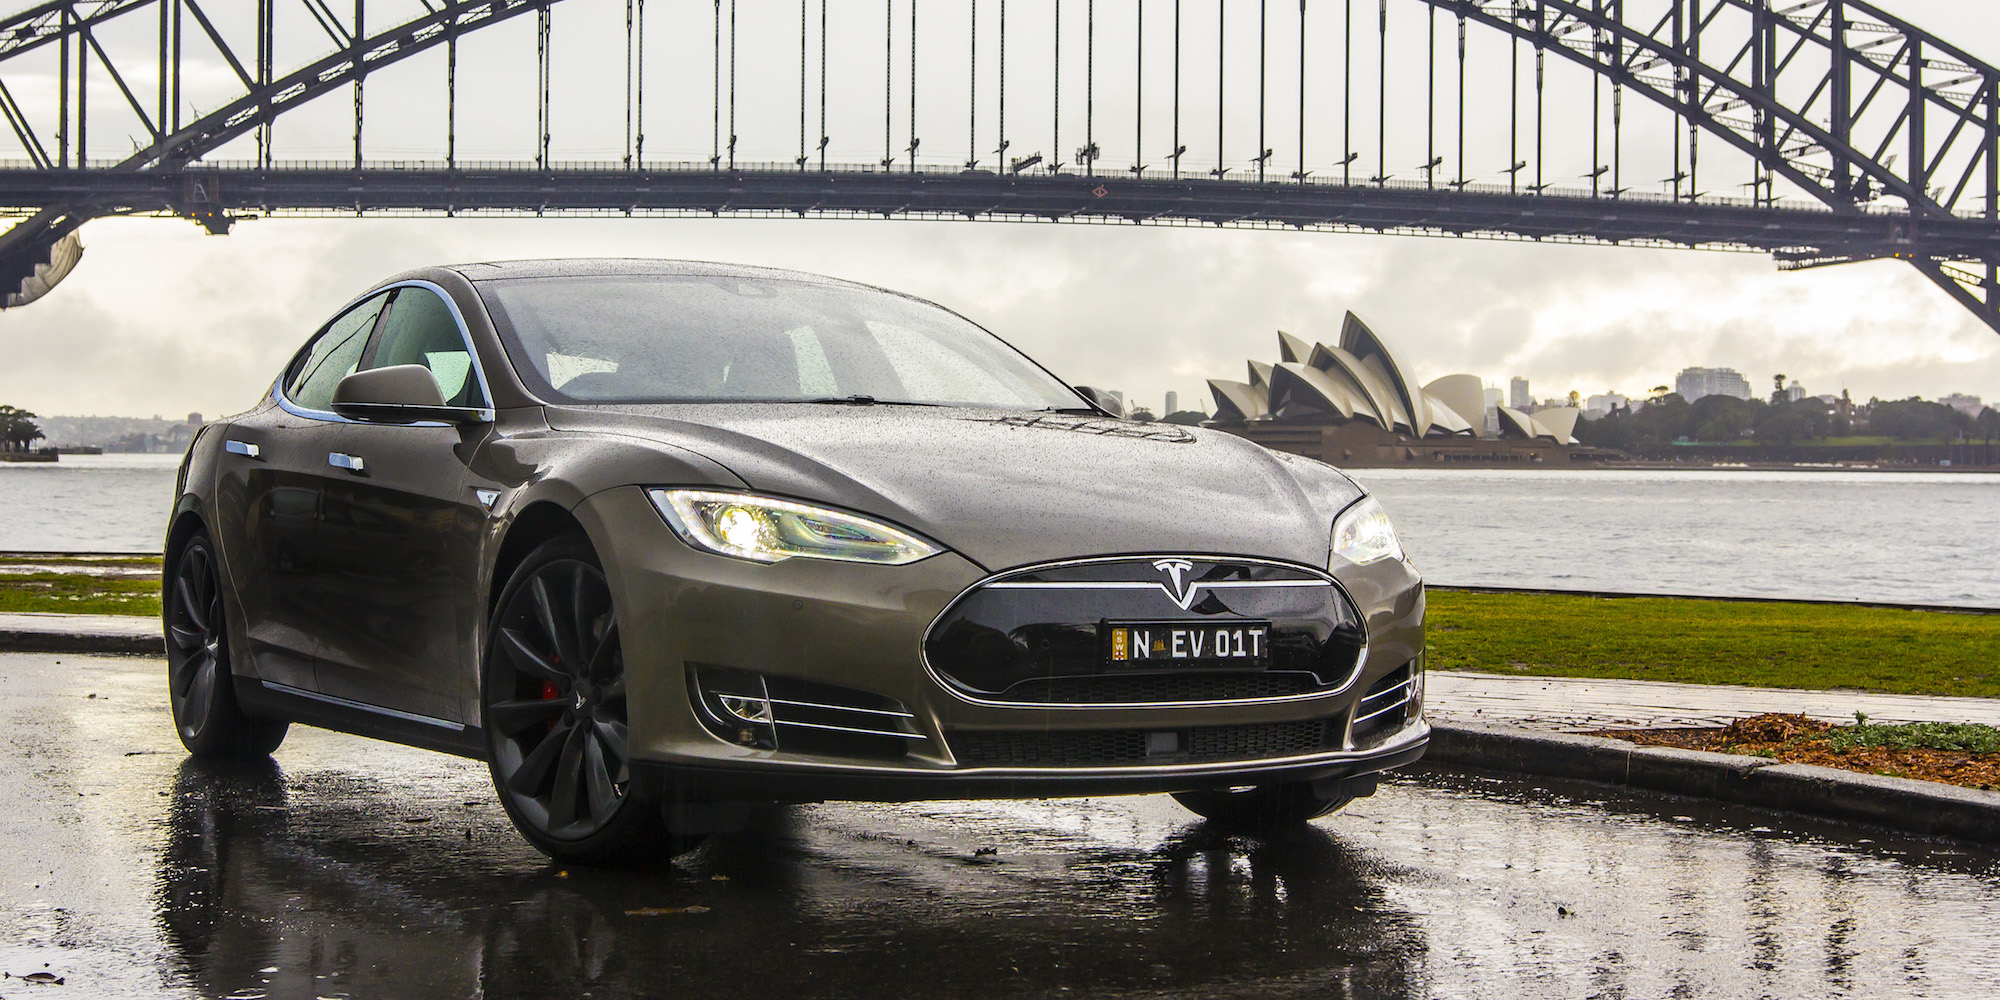 2015 Tesla Model S P85d Sedan (View 3 of 37)